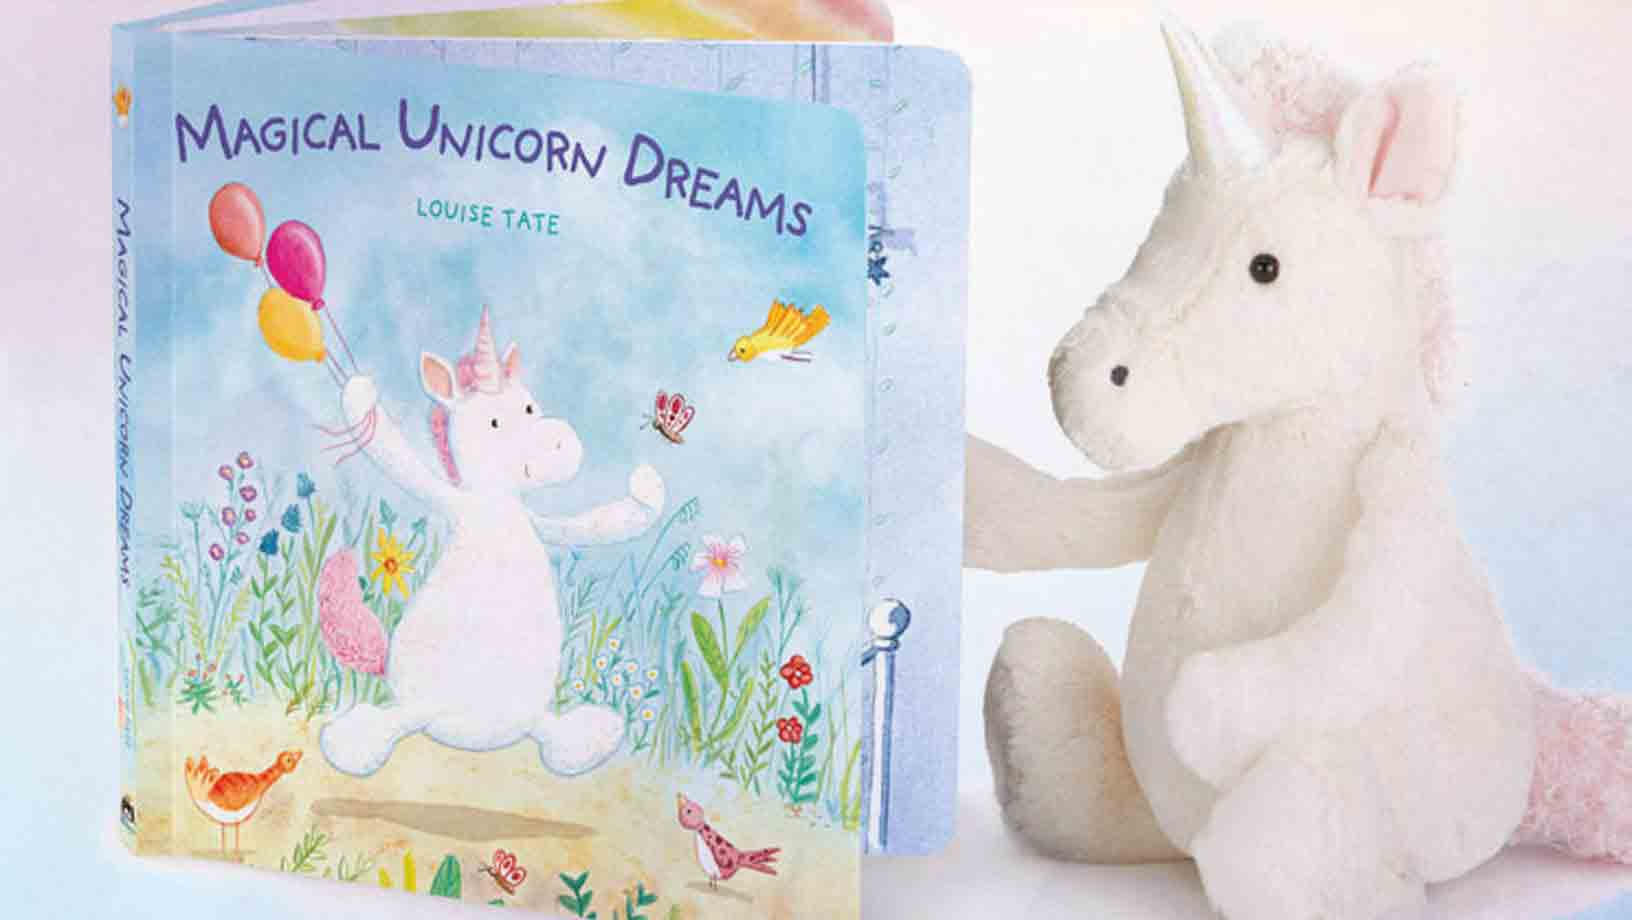 Magical Unicorn Dreams Book with a happy unicorn dancing along holding baloons behinf him with birds and a butterfly around him shout beside a soft pink and white unicorn teddy.